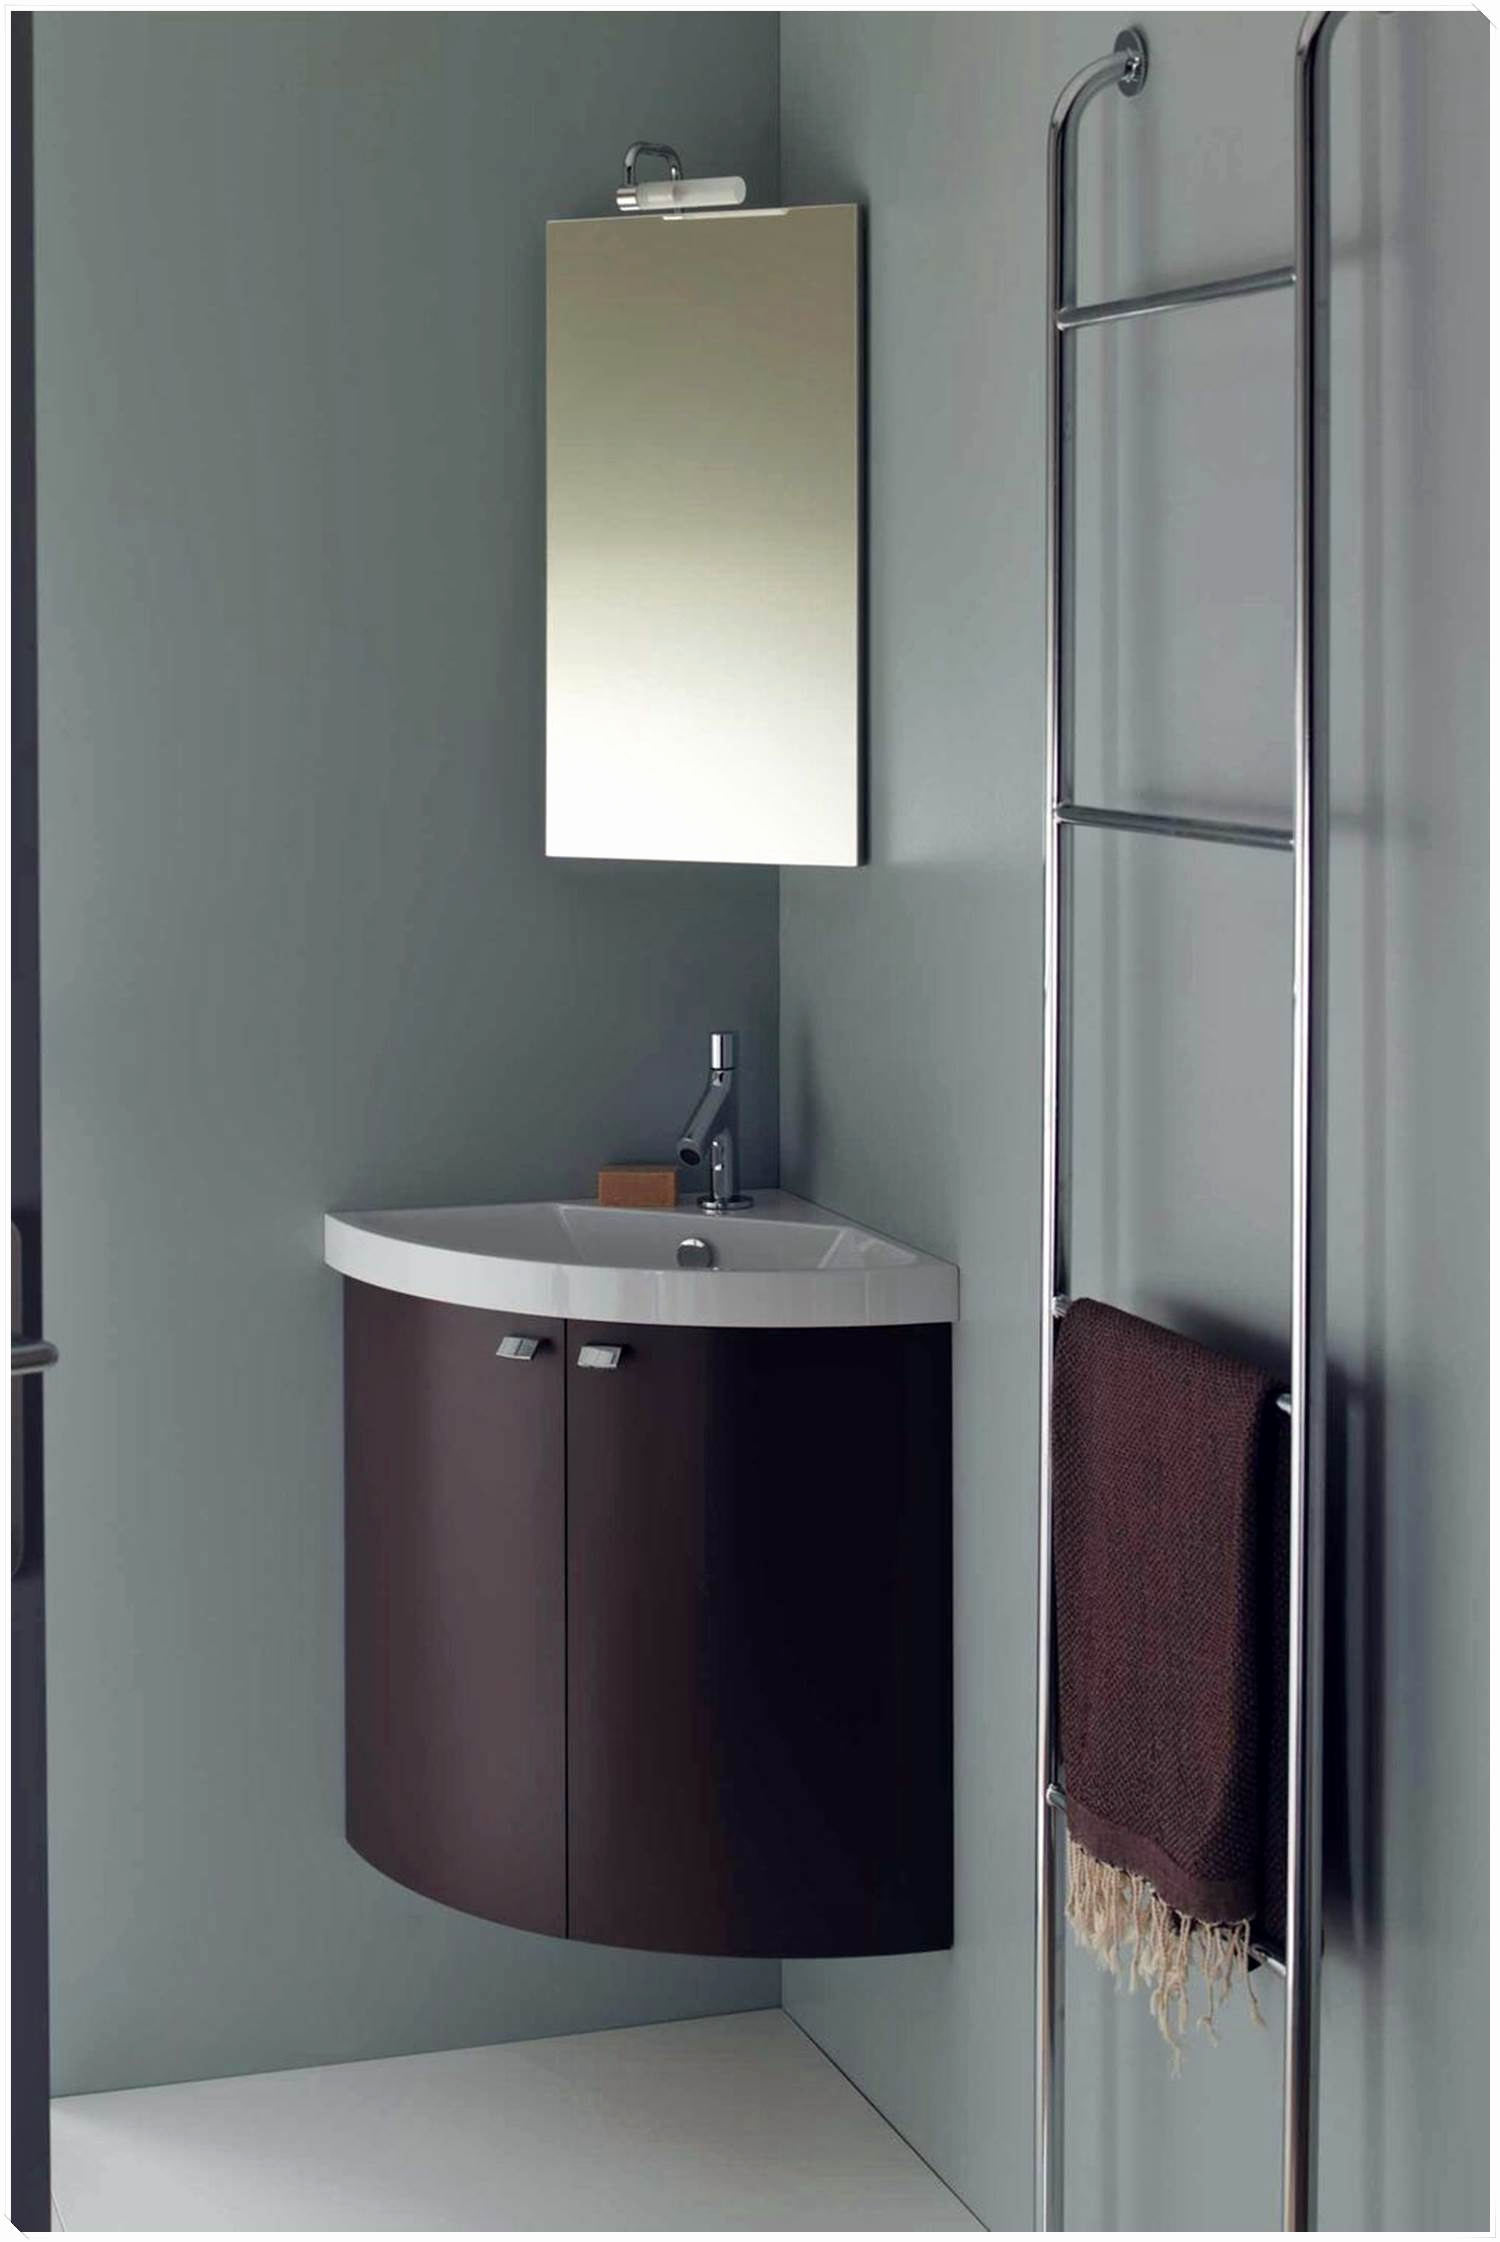 Lave Main Angle Leroy Merlin Inspirant Images Meuble Wc Leroy Merlin Meuble Lave Main Angle Wc Fashion Designs